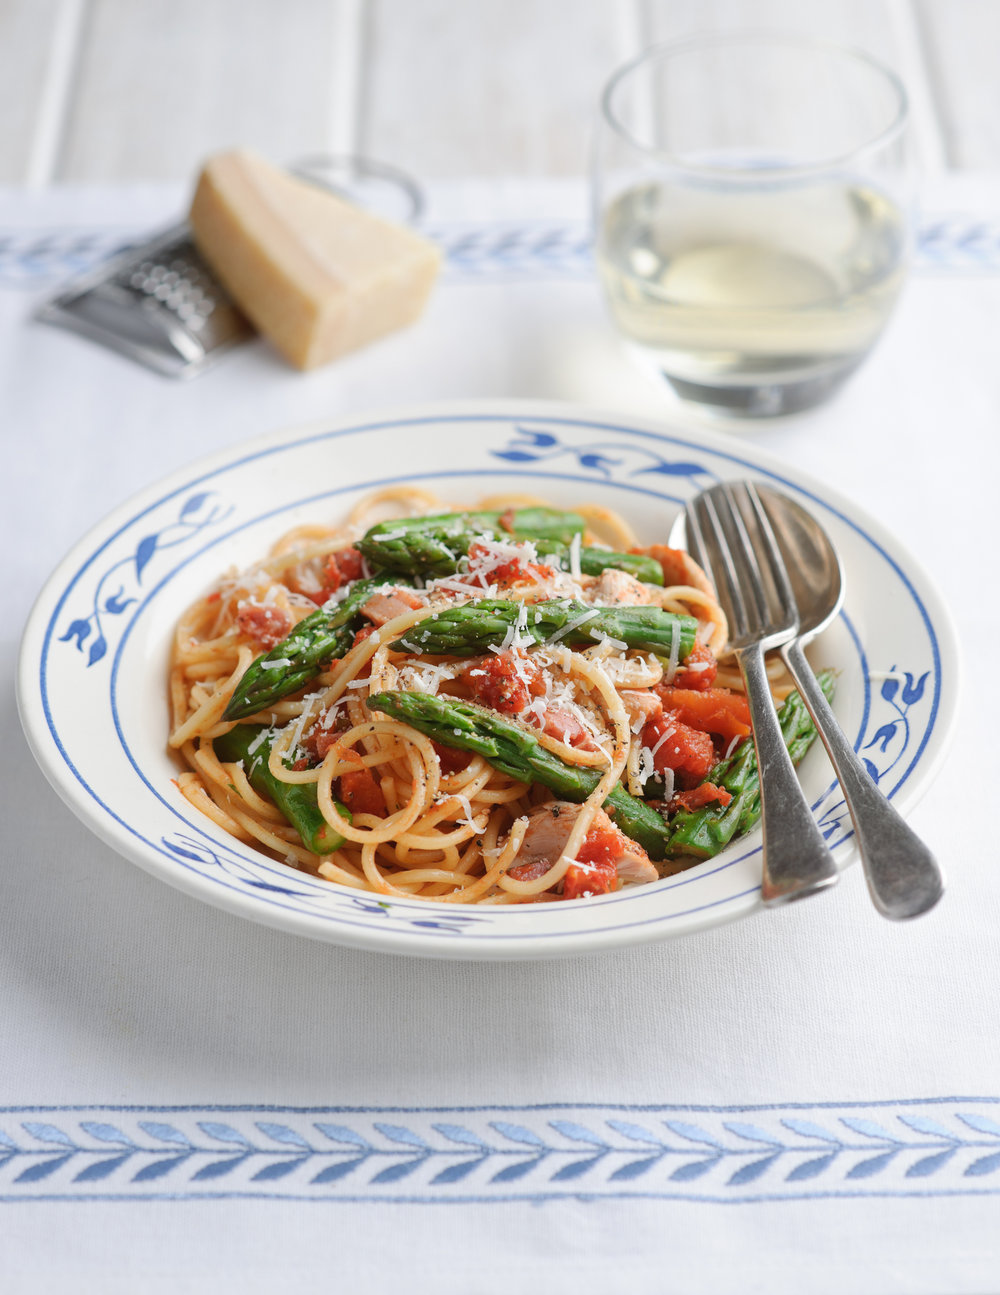 Fiery asparagus and chicken pasta - This is a recipe all of the family will love. You can reduce or omit all of the chilli altogether if your taste buds can't handle the heat. Either way this recipe is guaranteed to become a family favourite.